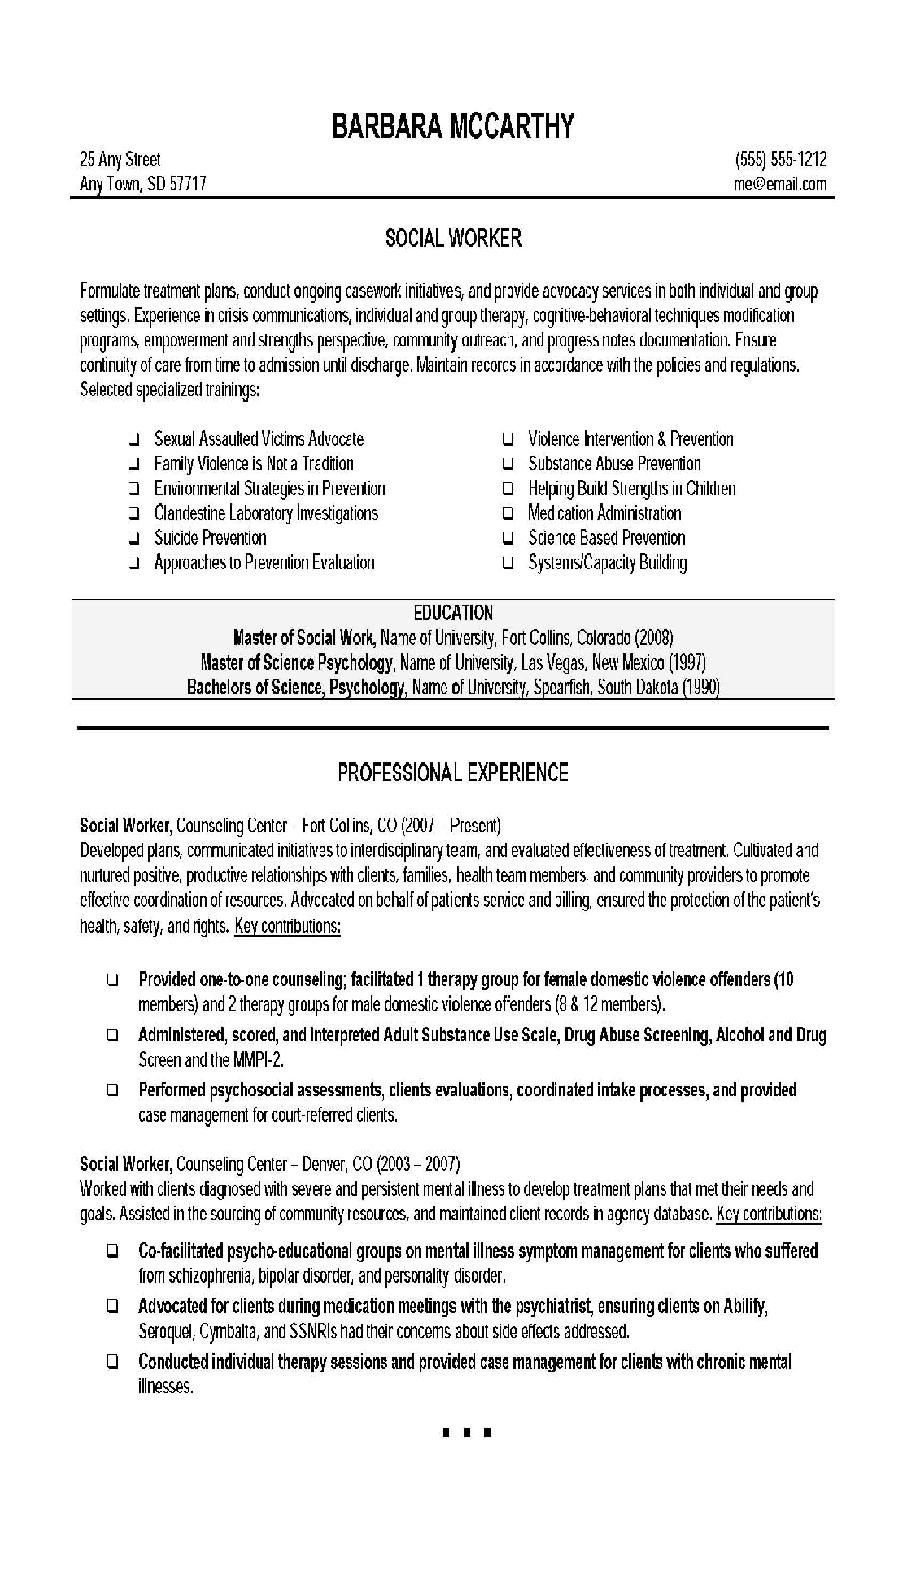 Resume Sample Resume Of Social Worker resumes for social workers casino porter sample resume rough draft click here to download this worker template http 8743fa7436425ce3349617294dfd6957 30680841185291466